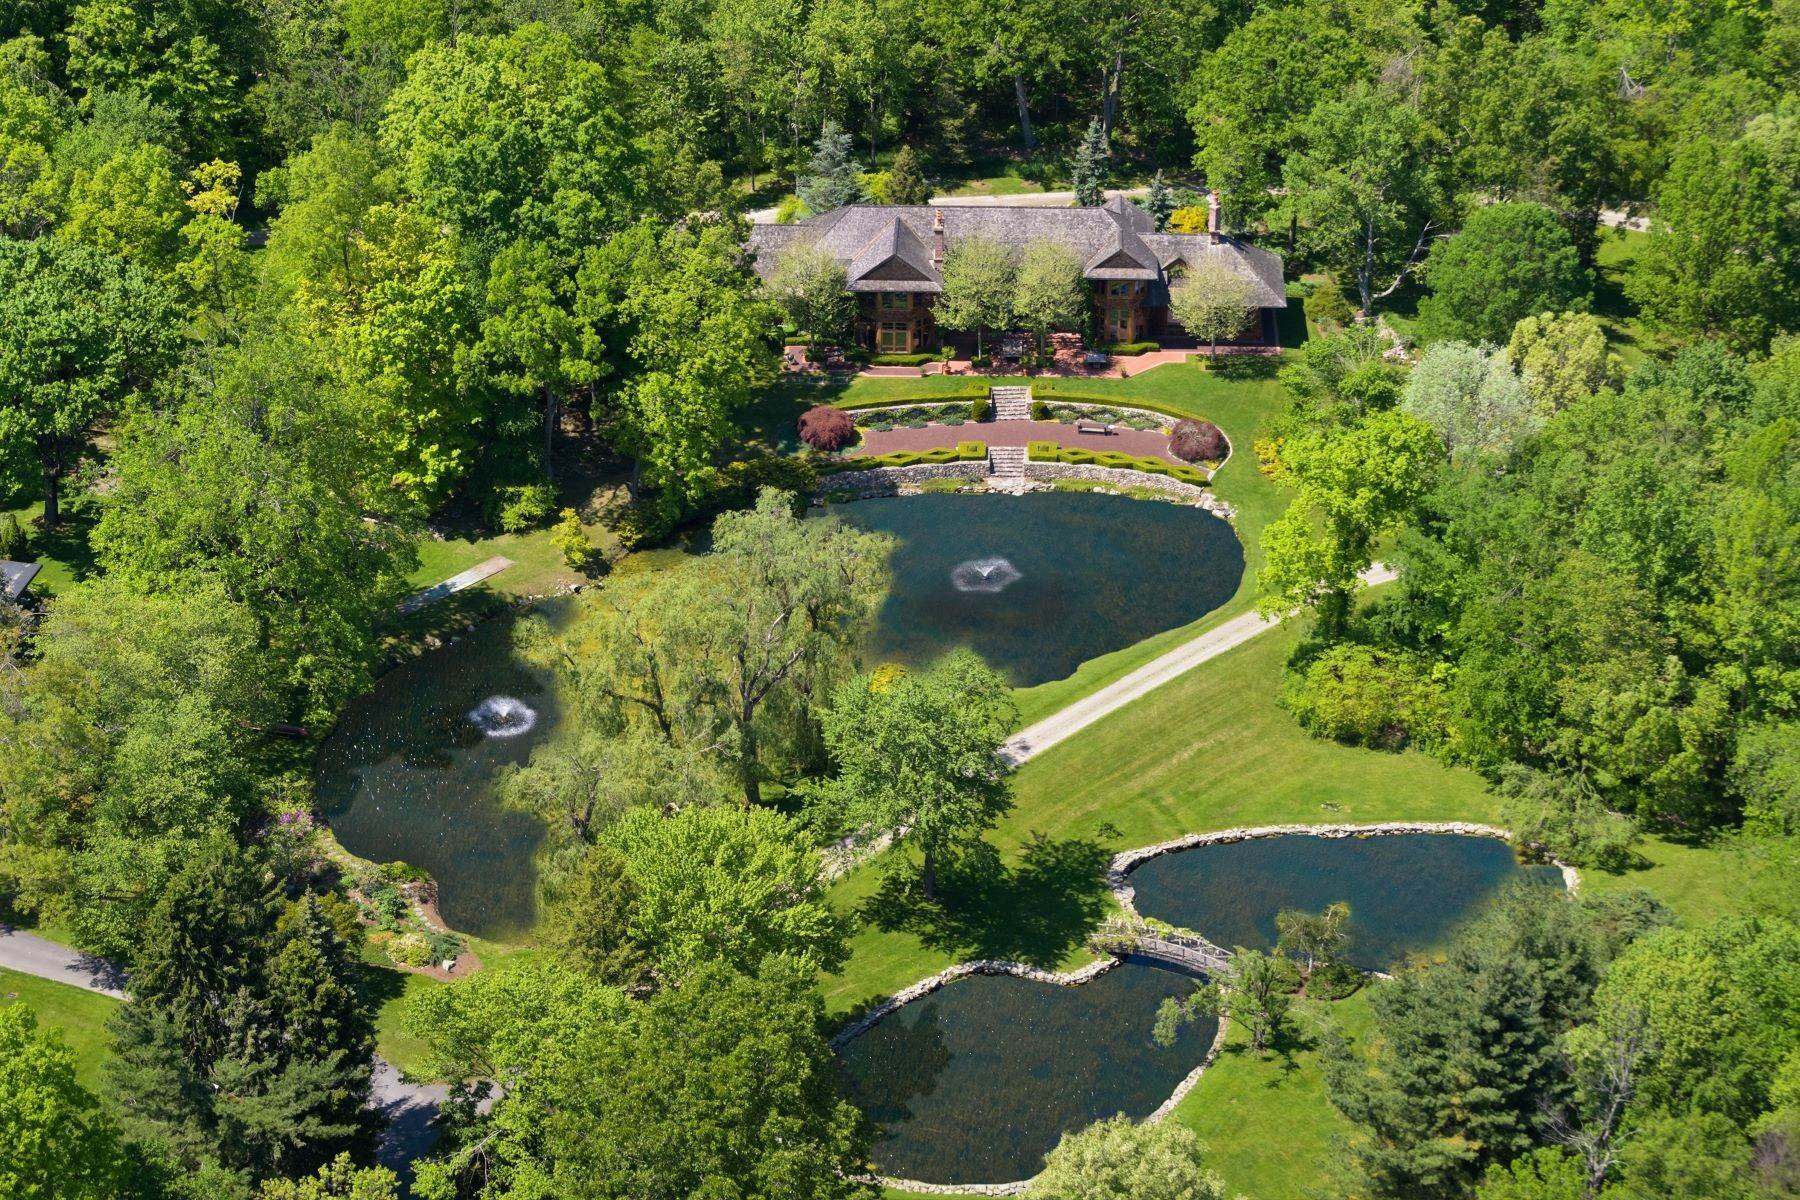 Single Family Homes for Sale at Idyllic Compound on 29 Acres 323 Florida Hill Road Ridgefield, Connecticut 06877 United States